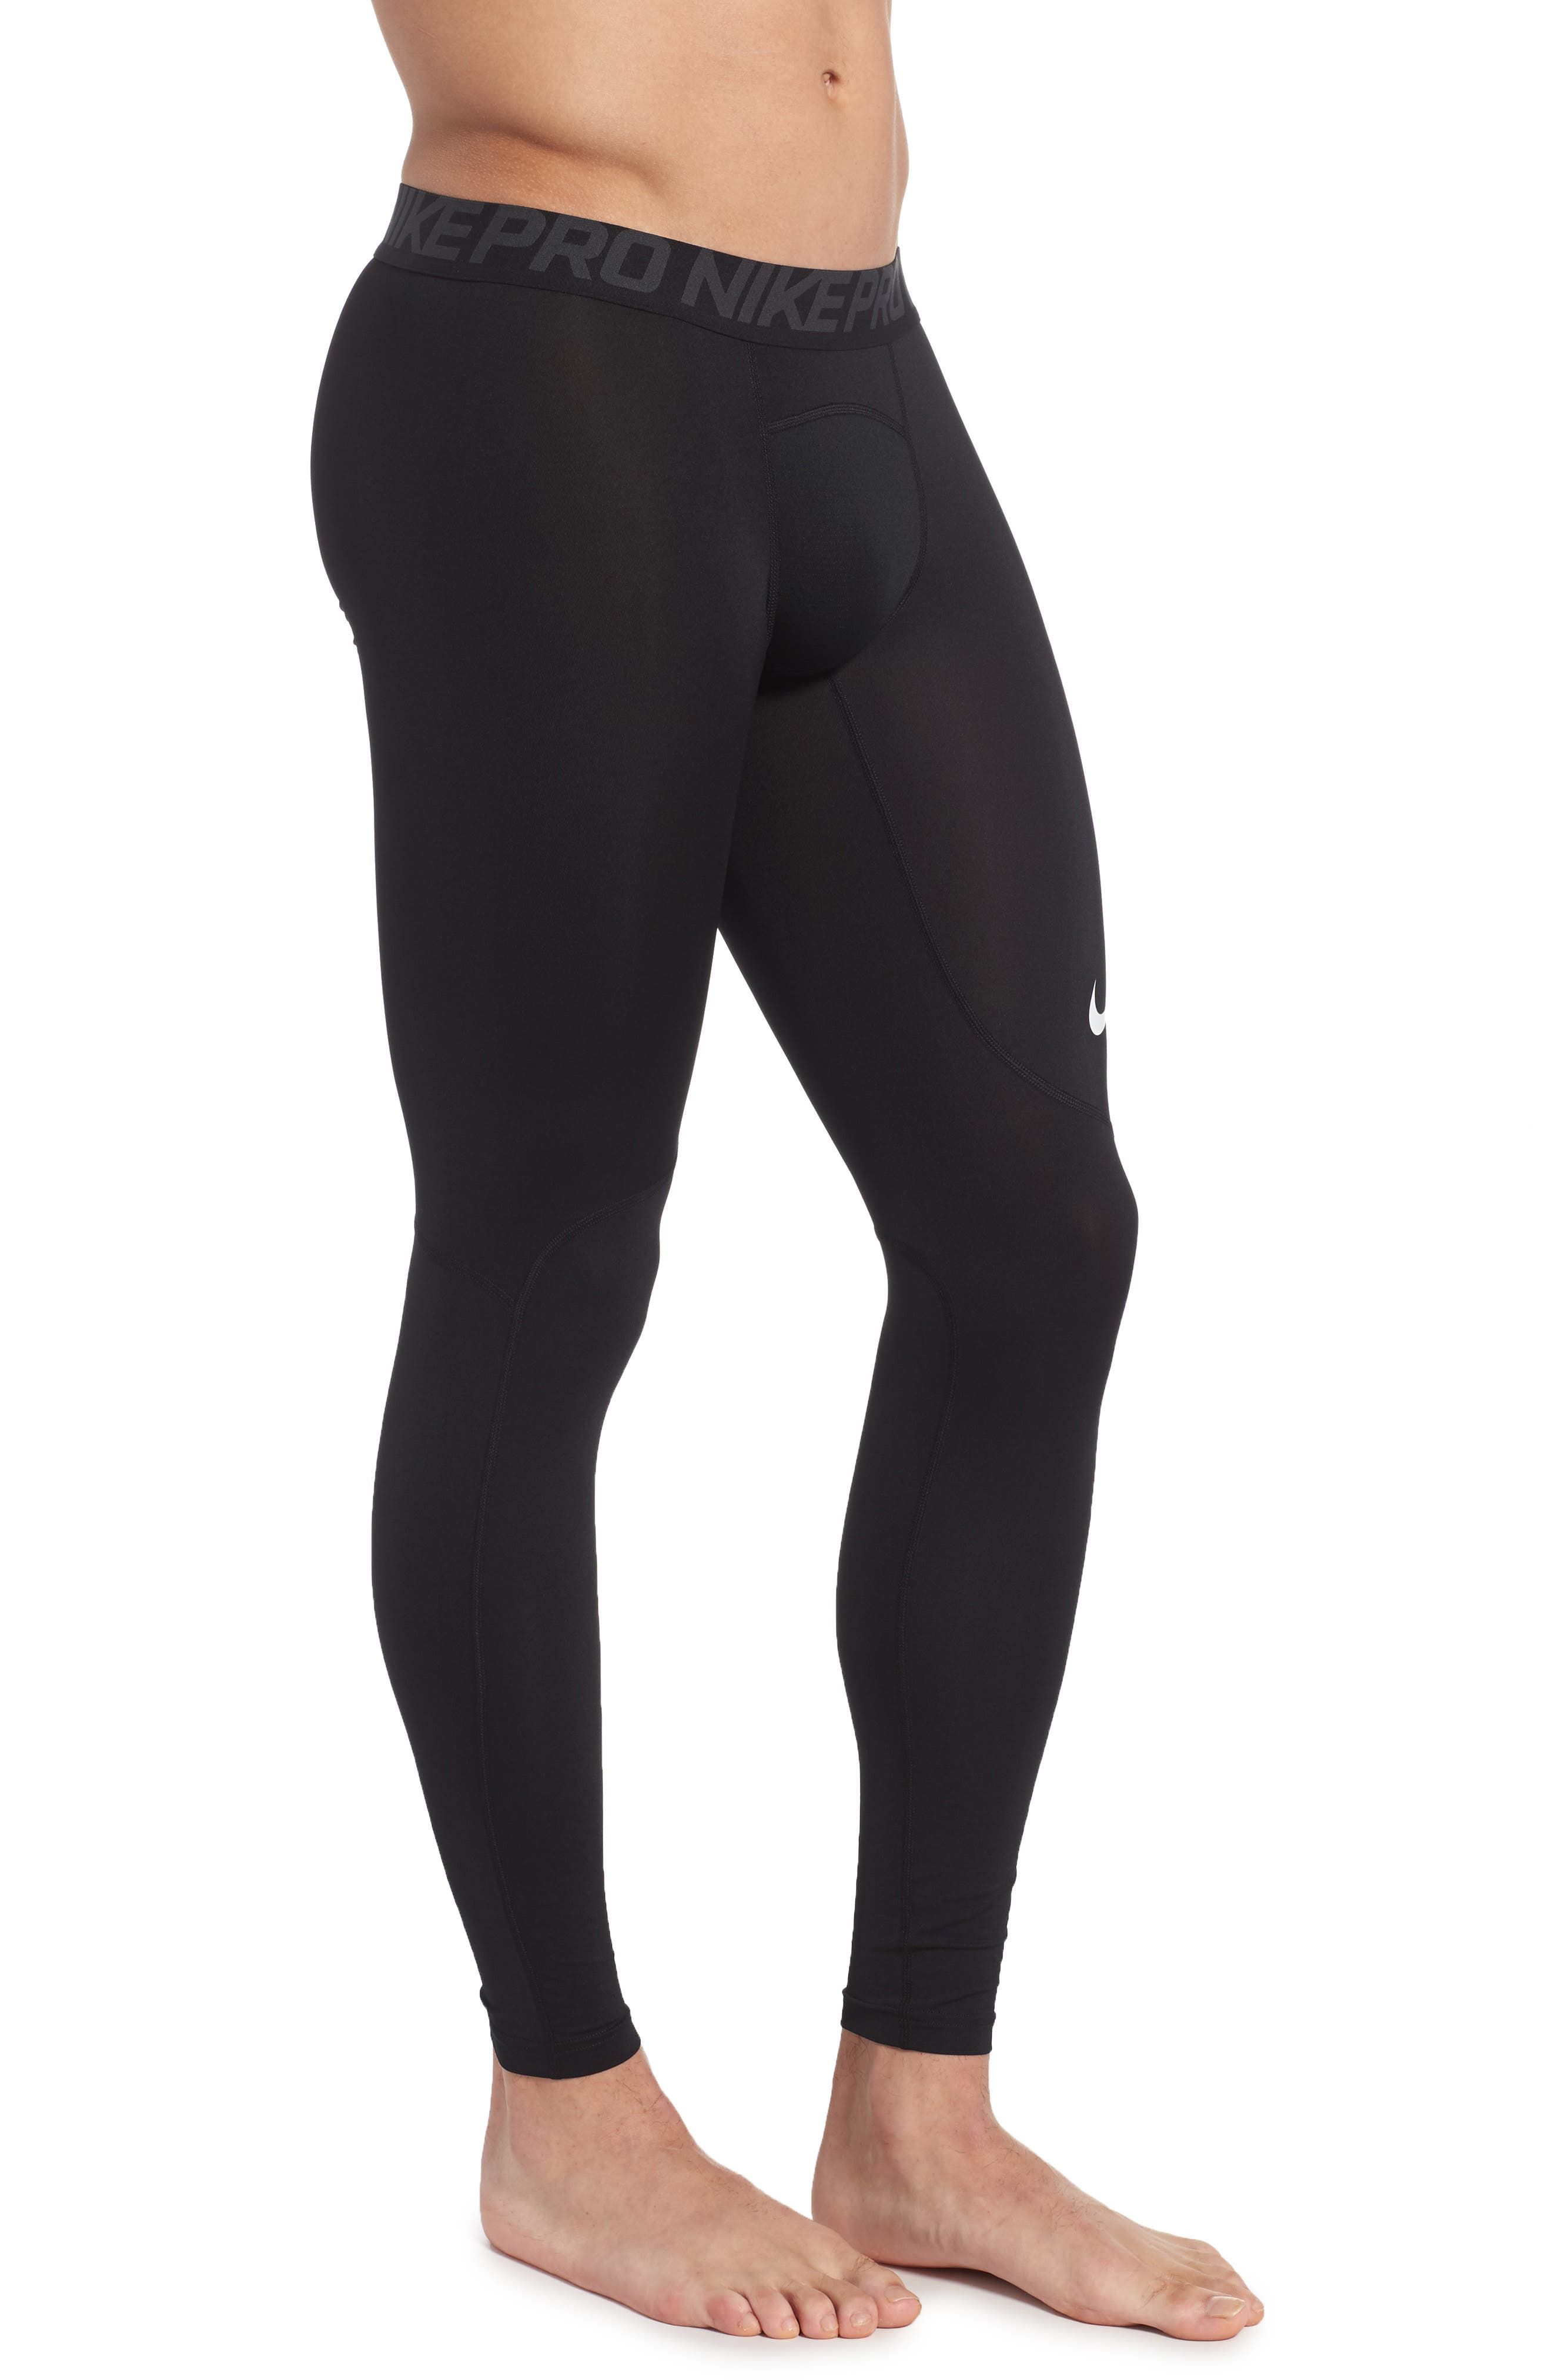 Pro Athletic Tights,                             Alternate thumbnail 3, color,                             Black/ Anthracite/ White